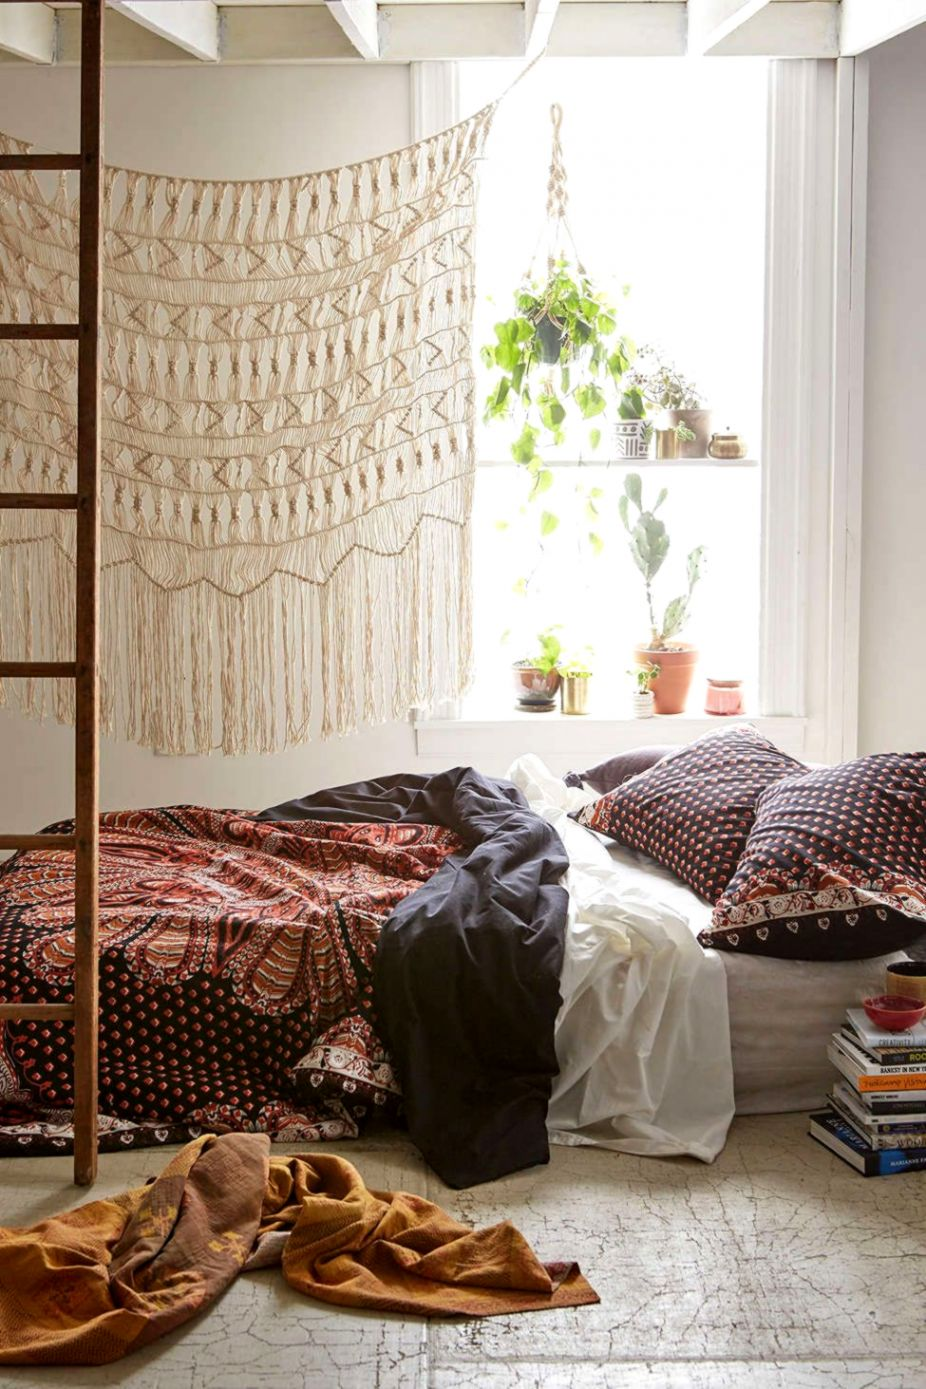 Chic Bedroom Decorating Ideas Bohemian Chic Bedroom Decorating Ideas Free Wallpapers